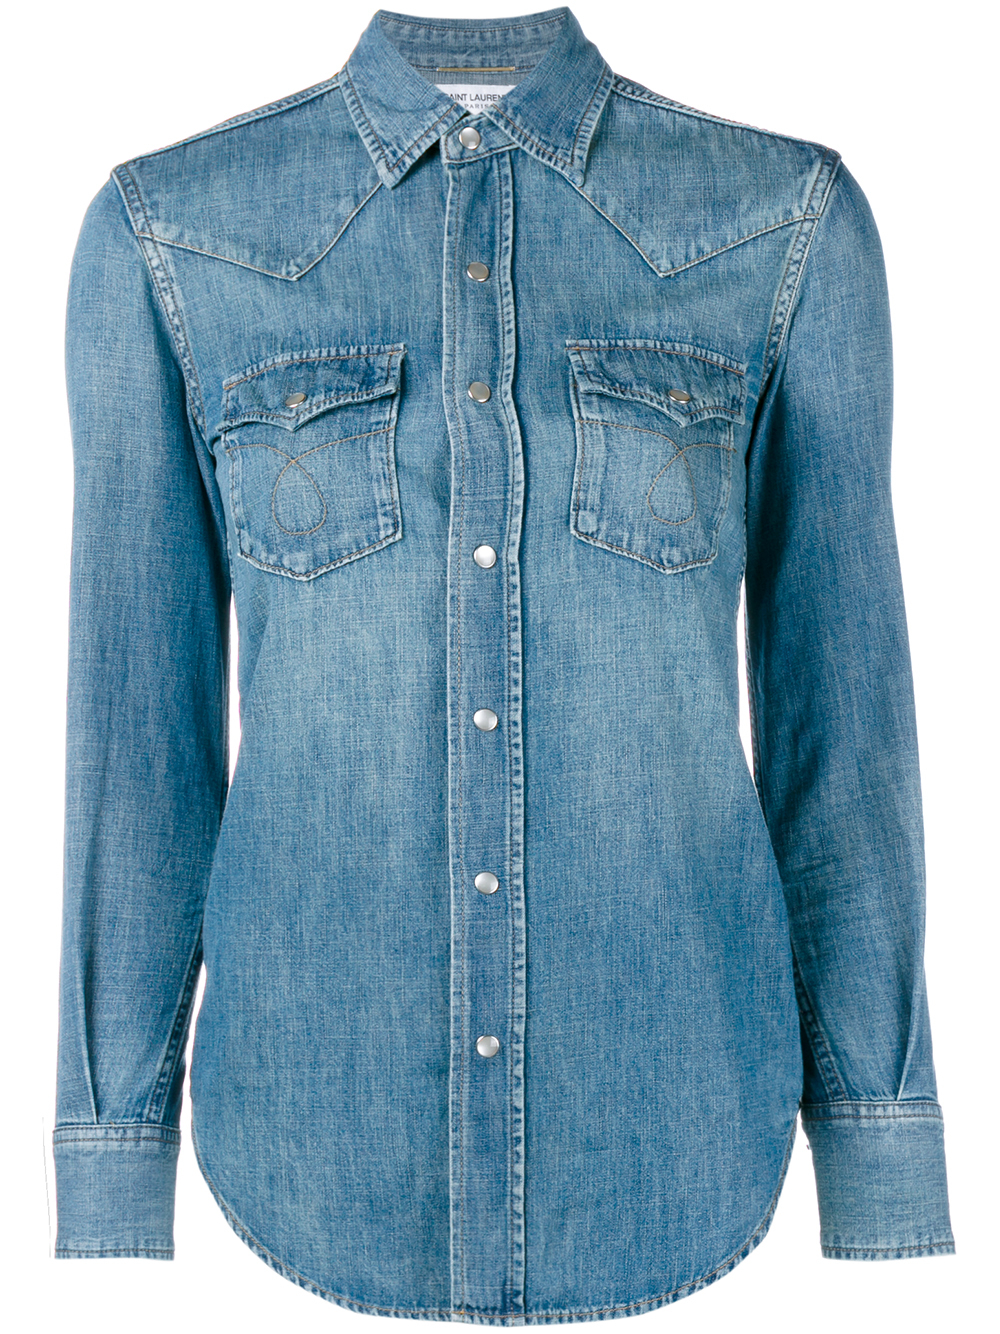 d87a4592c6 Saint Laurent Classic Denim Shirt in Blue - Lyst